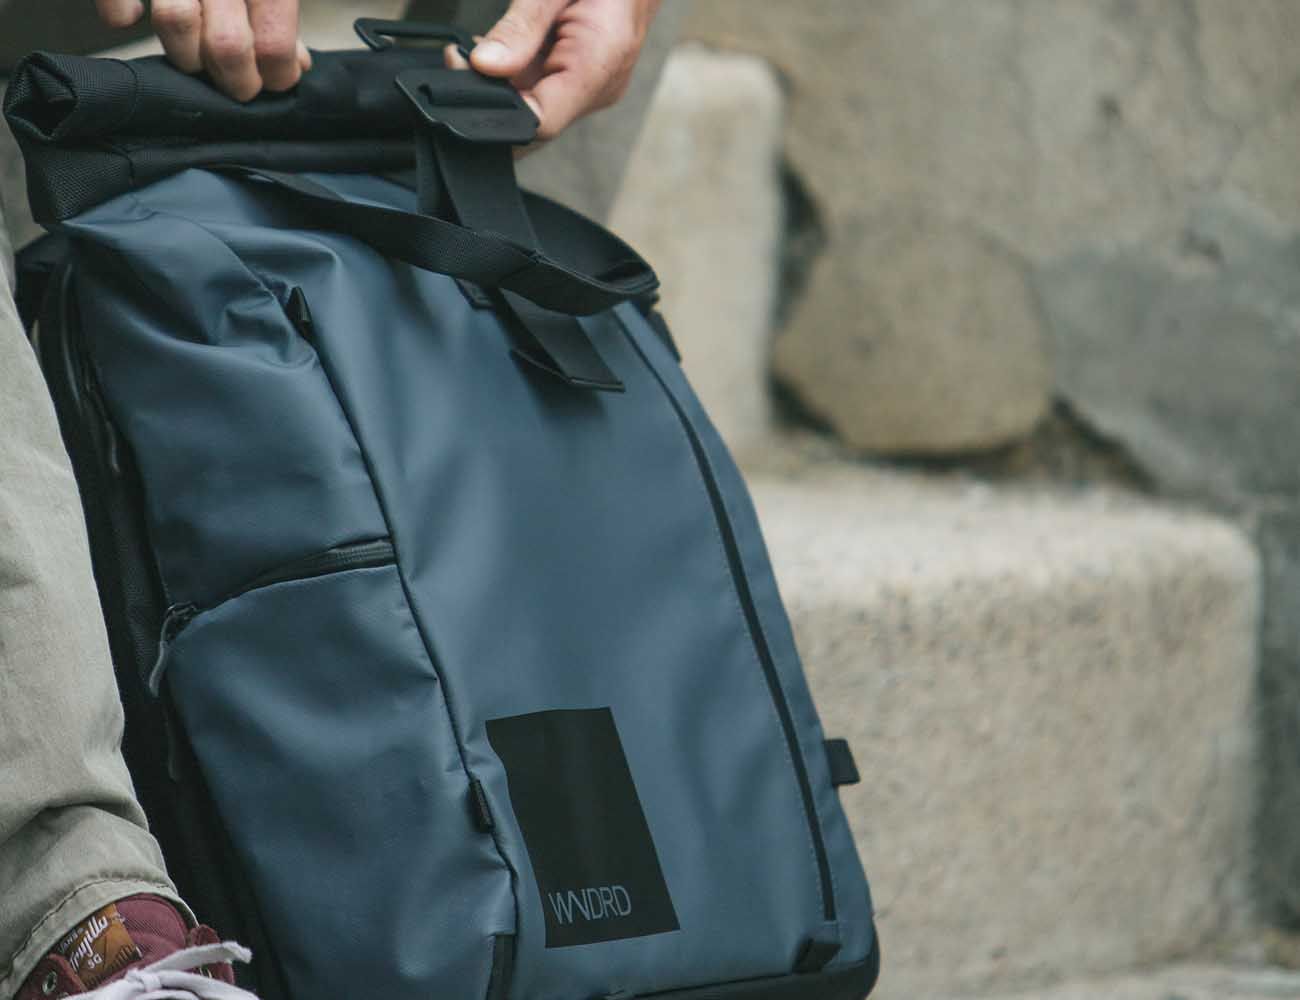 PRVKE Pack by WANDRD – The Bag for Photographers and Travelers